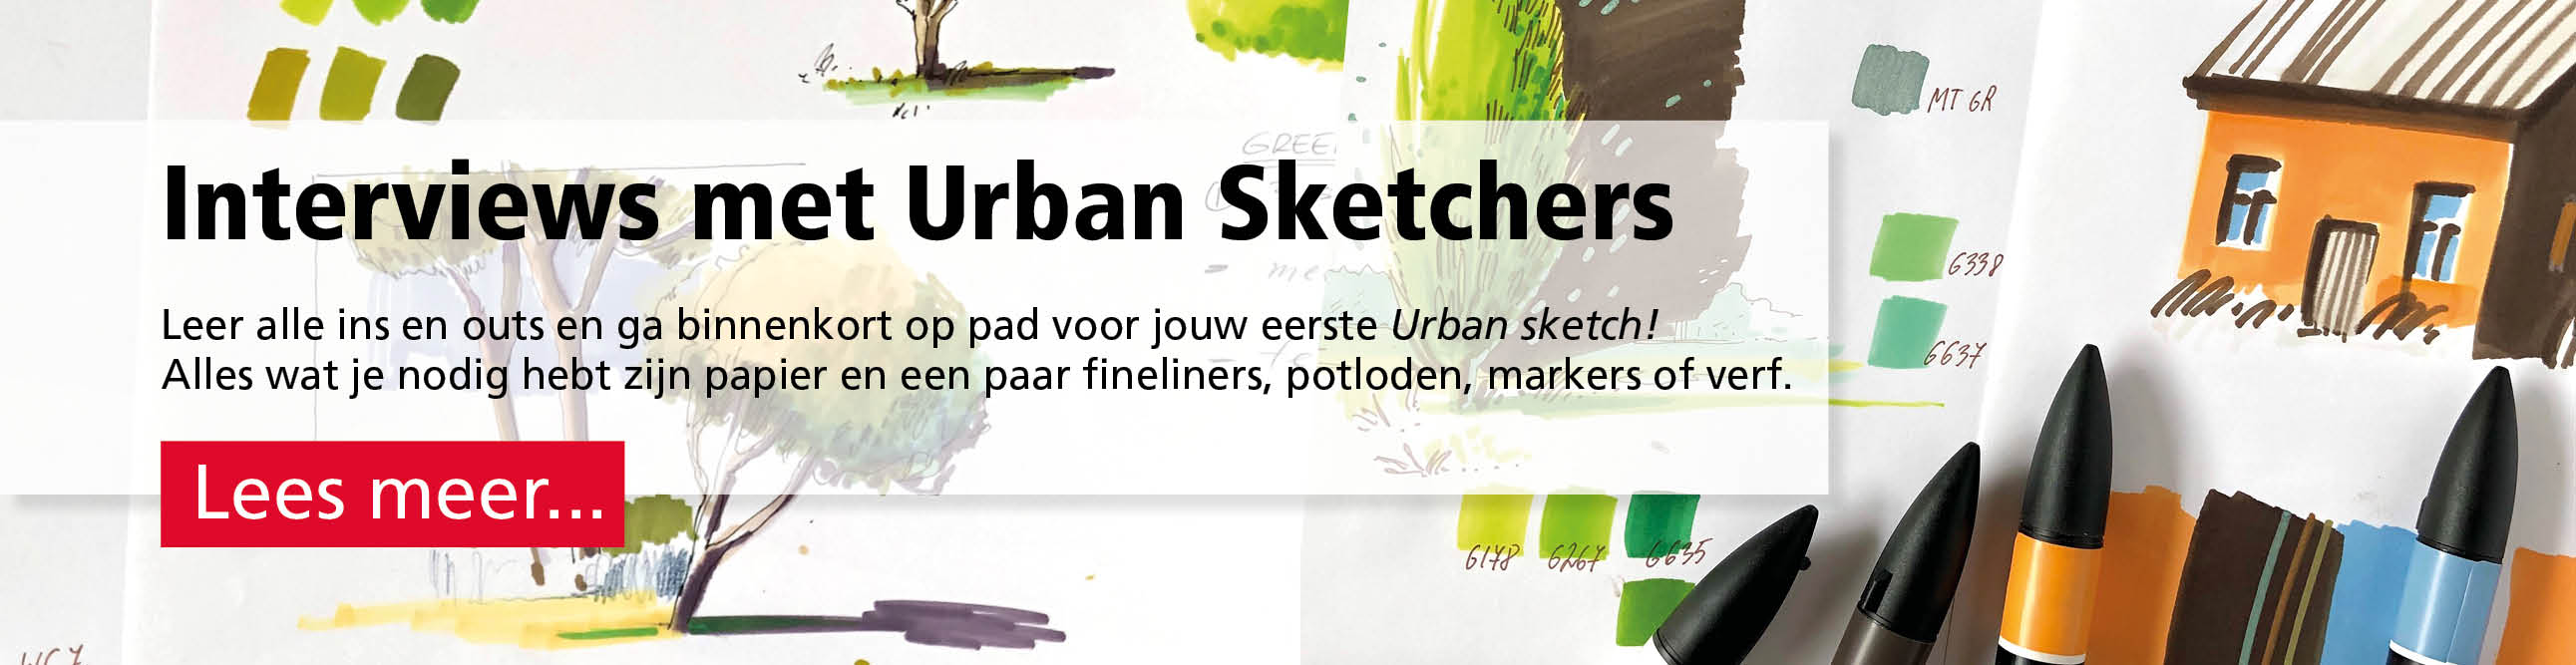 Interviews met Urban Sketchers